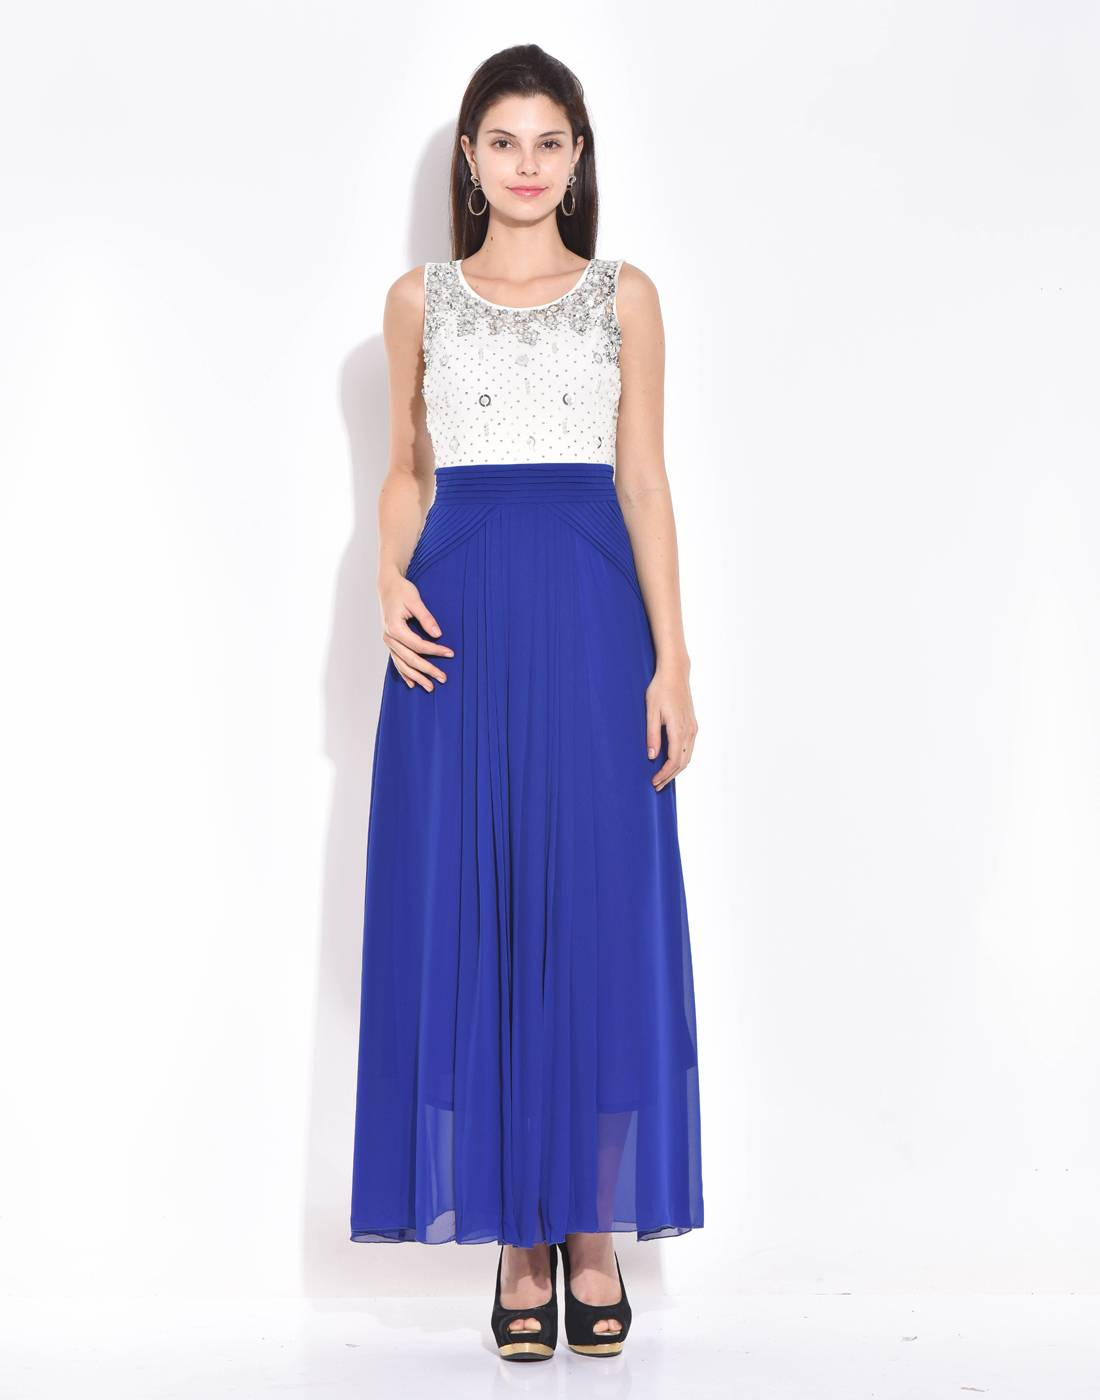 Royal Blue-Ivory Beaded and Sequined Dress